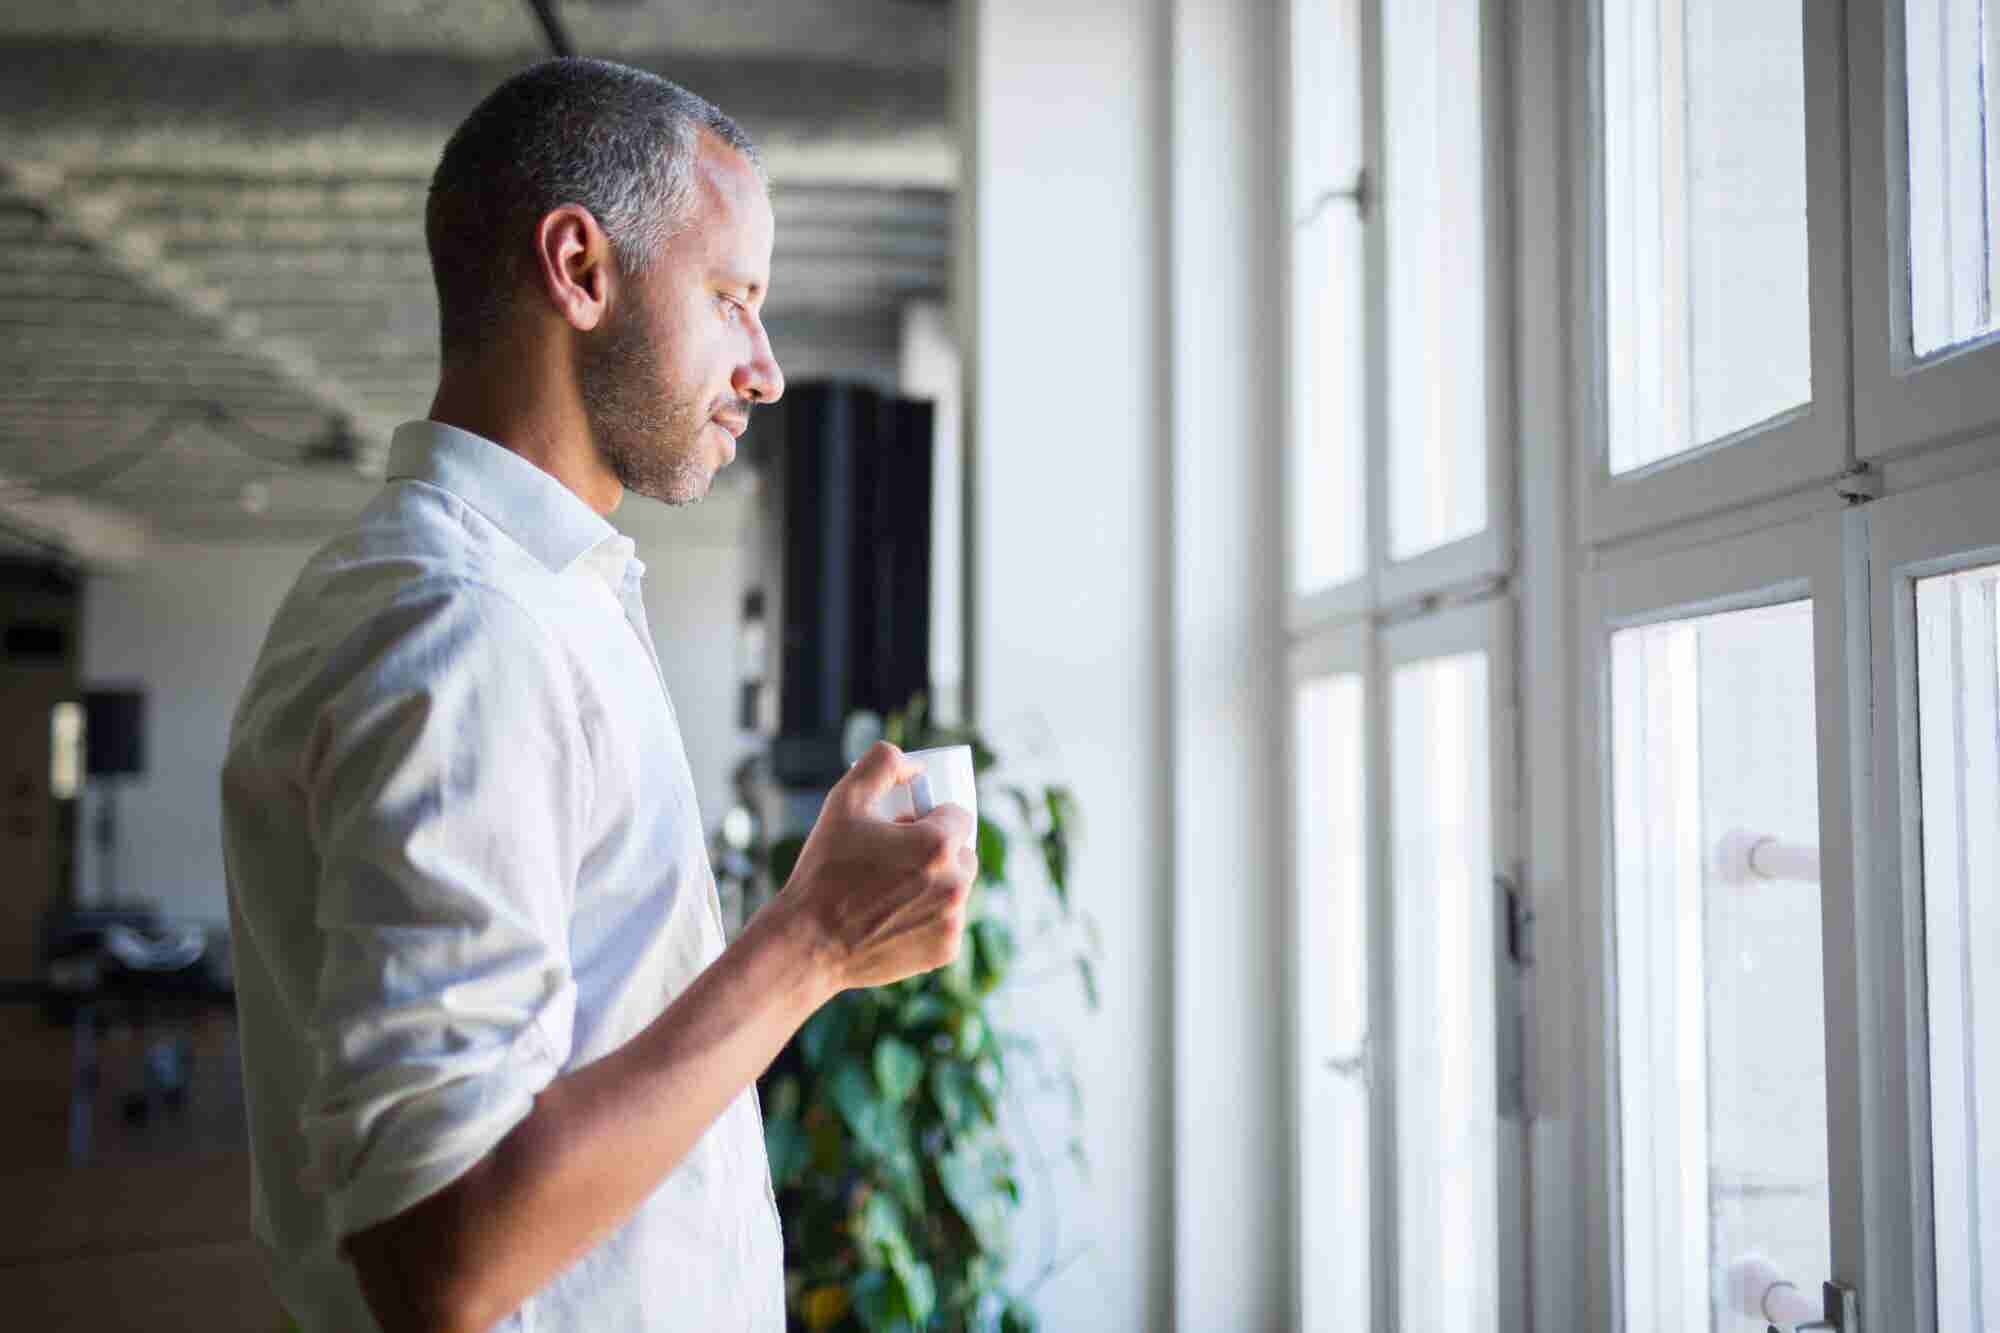 How to Combat the Growing Epidemic of Loneliness in the Workplace